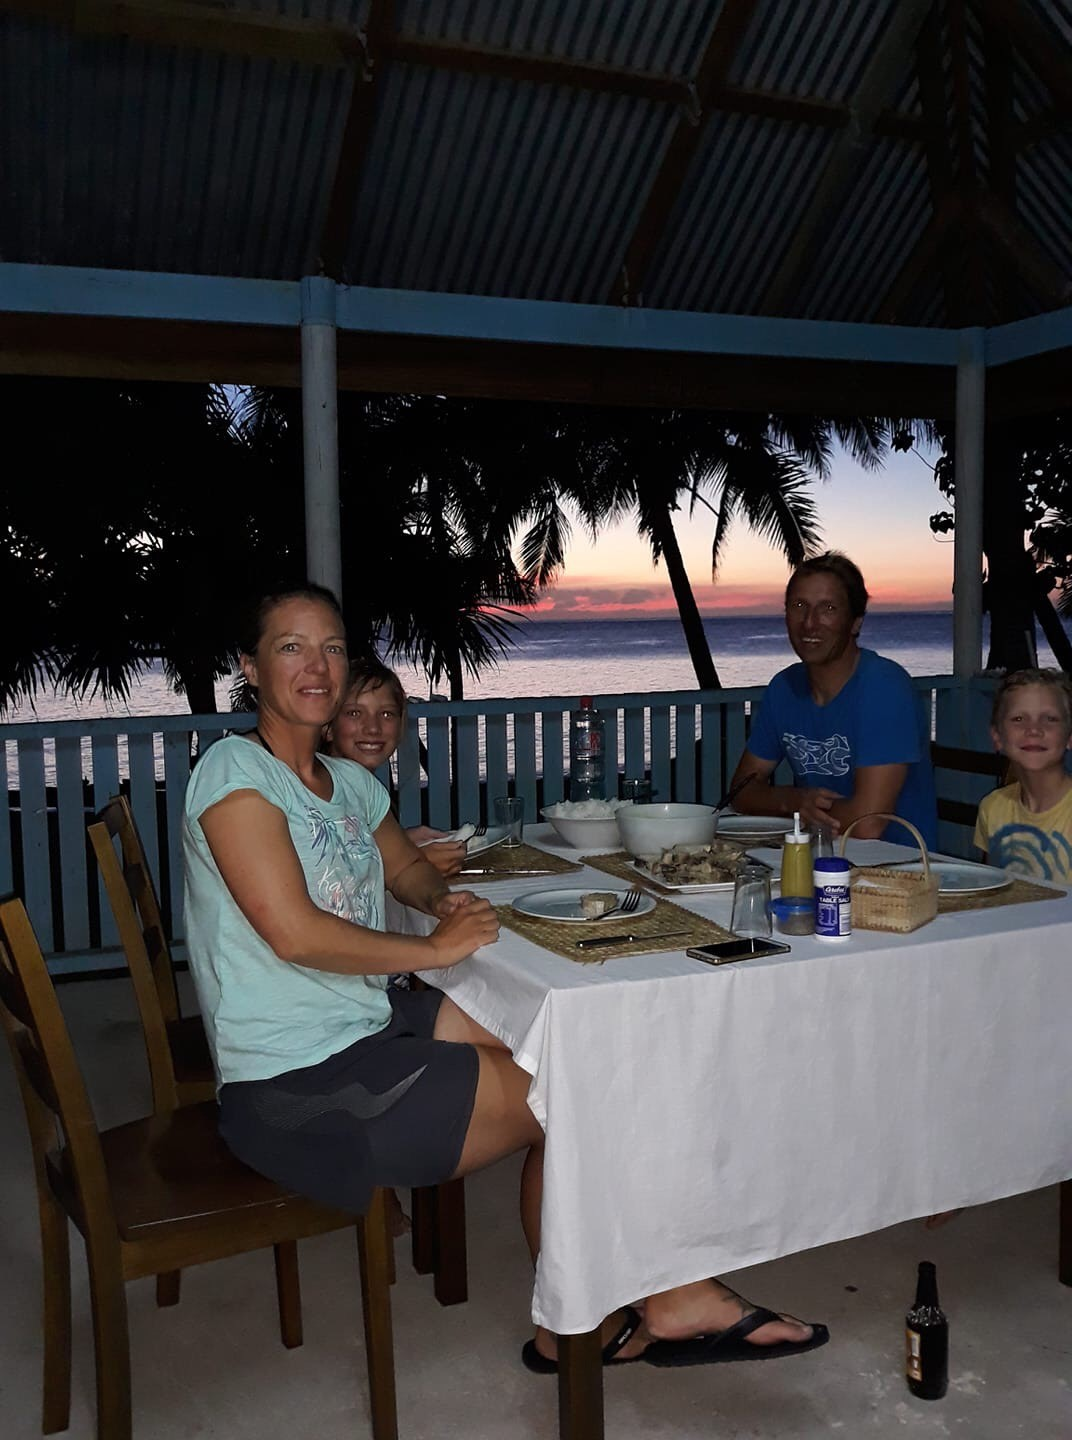 - It was a truly magic experience. The family is amazing and have a great sense of hospitality. There are obviously lots of differences if comparing to a resort. However for what it is, its amazing. It really is a little gem. So I'm hesitant to recommend the hell out of it in fear it will be overrun next time I go there, which I will for sure!Ohh and the swell…. Unreal. 5 days of pumping to really scary waves. The first 3 days it was perfect 4-6 ft uncrowded and the last 2 days it bumped up to 8-10 ft, with me and 3 other guest out…Feedback in one word: EPIC!~ KasperJune 2019